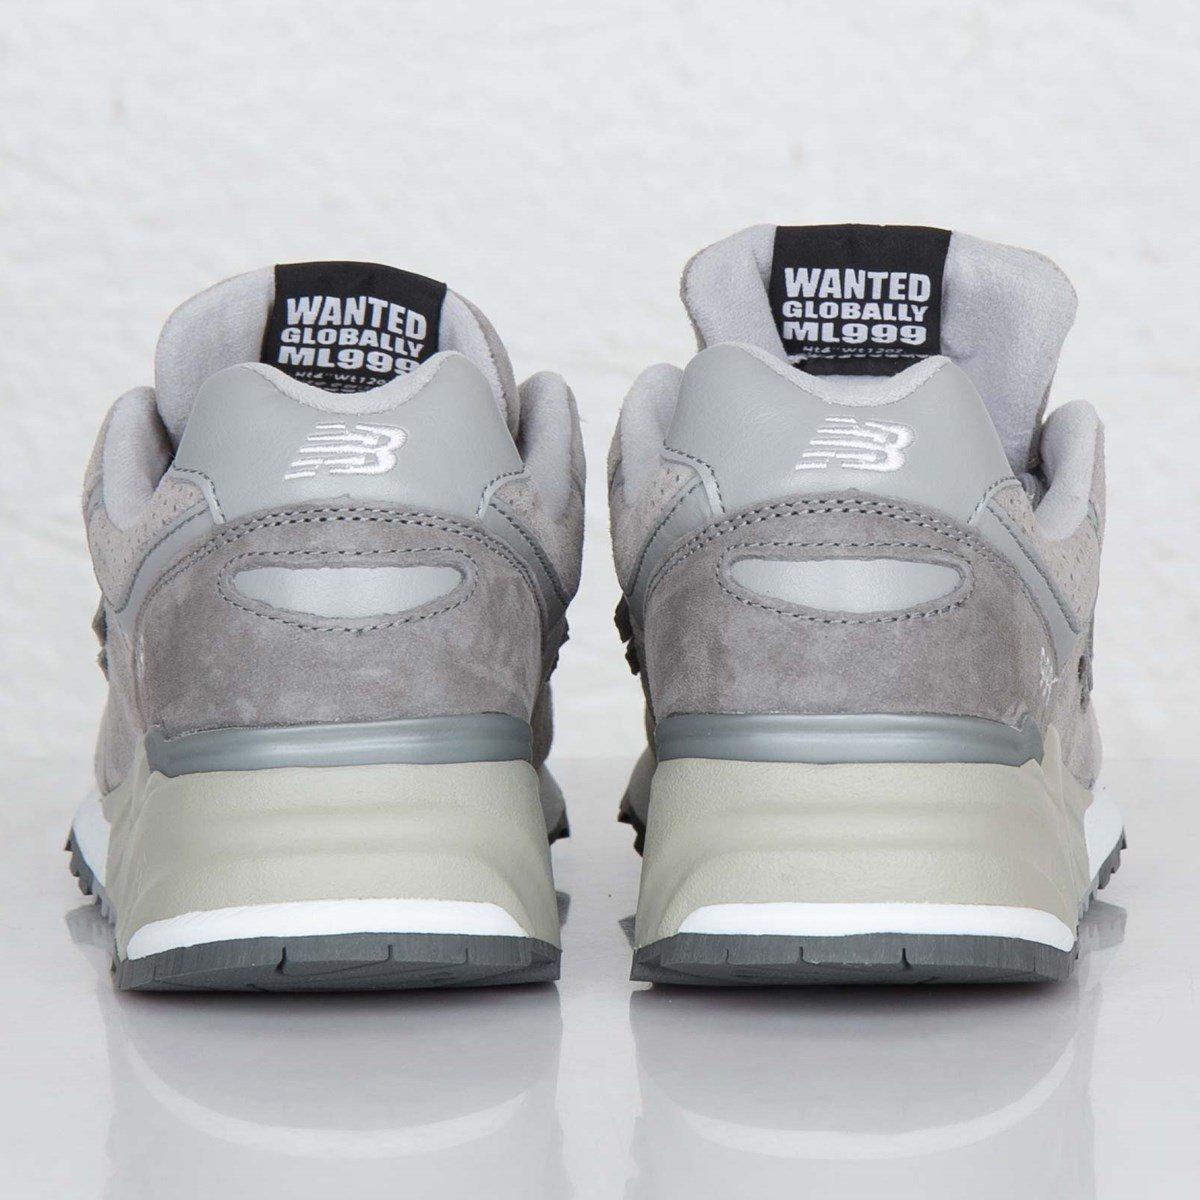 low priced 1da31 42edb New Balance ML999 - Ml999mg - Sneakersnstuff   sneakers et streetwear en ligne  depuis 1999